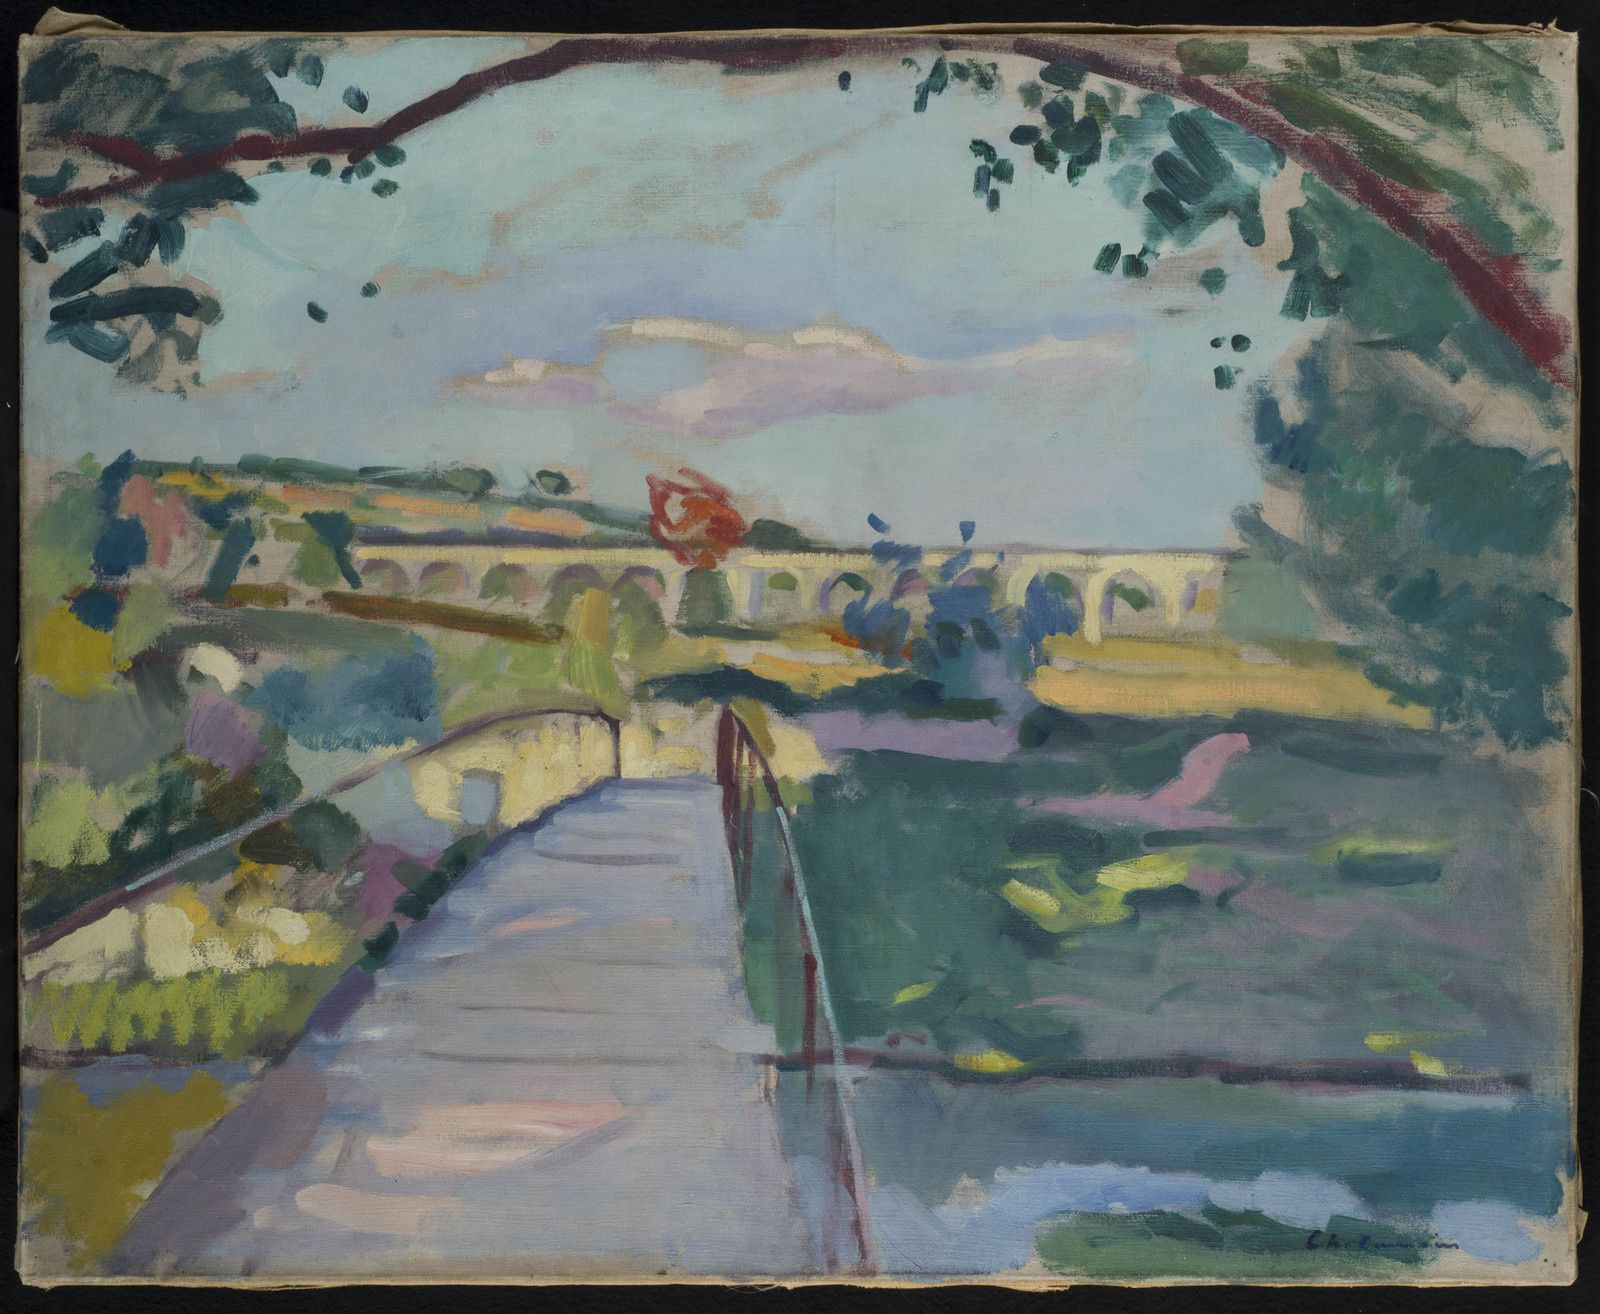 Charles Camoin (1879-1965), Les bords de l'Arc, La Passerelle, 1906 – Photo Patrick Goetelen - ADAGP, Paris 2016